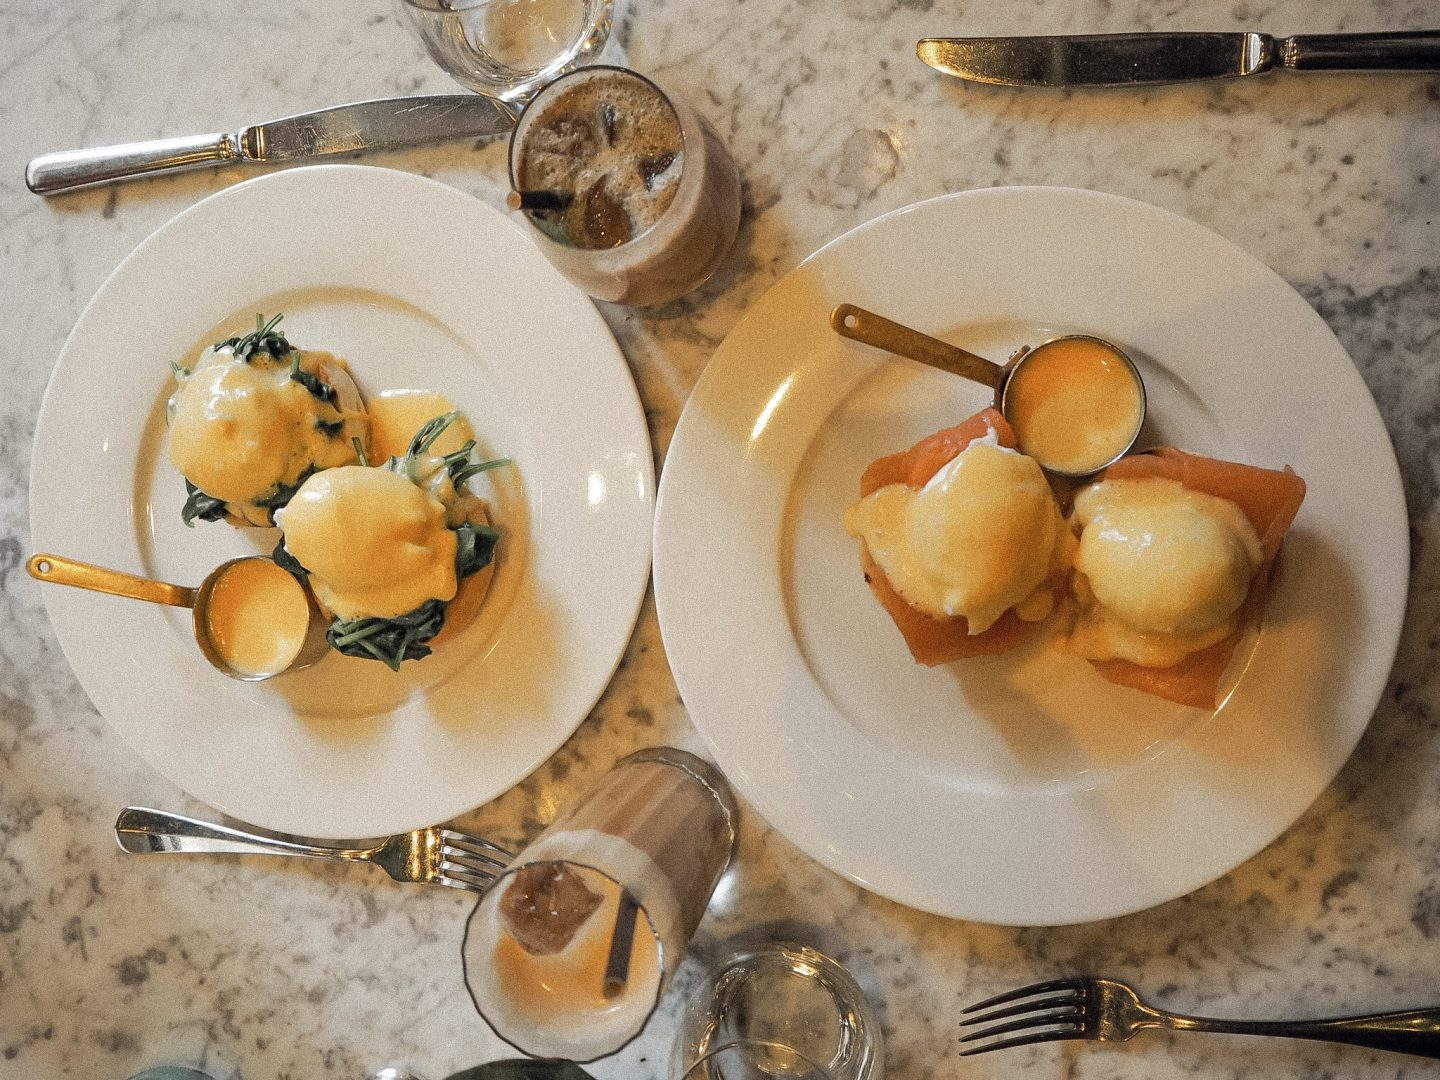 Brunch at Dalloway Terrace in London